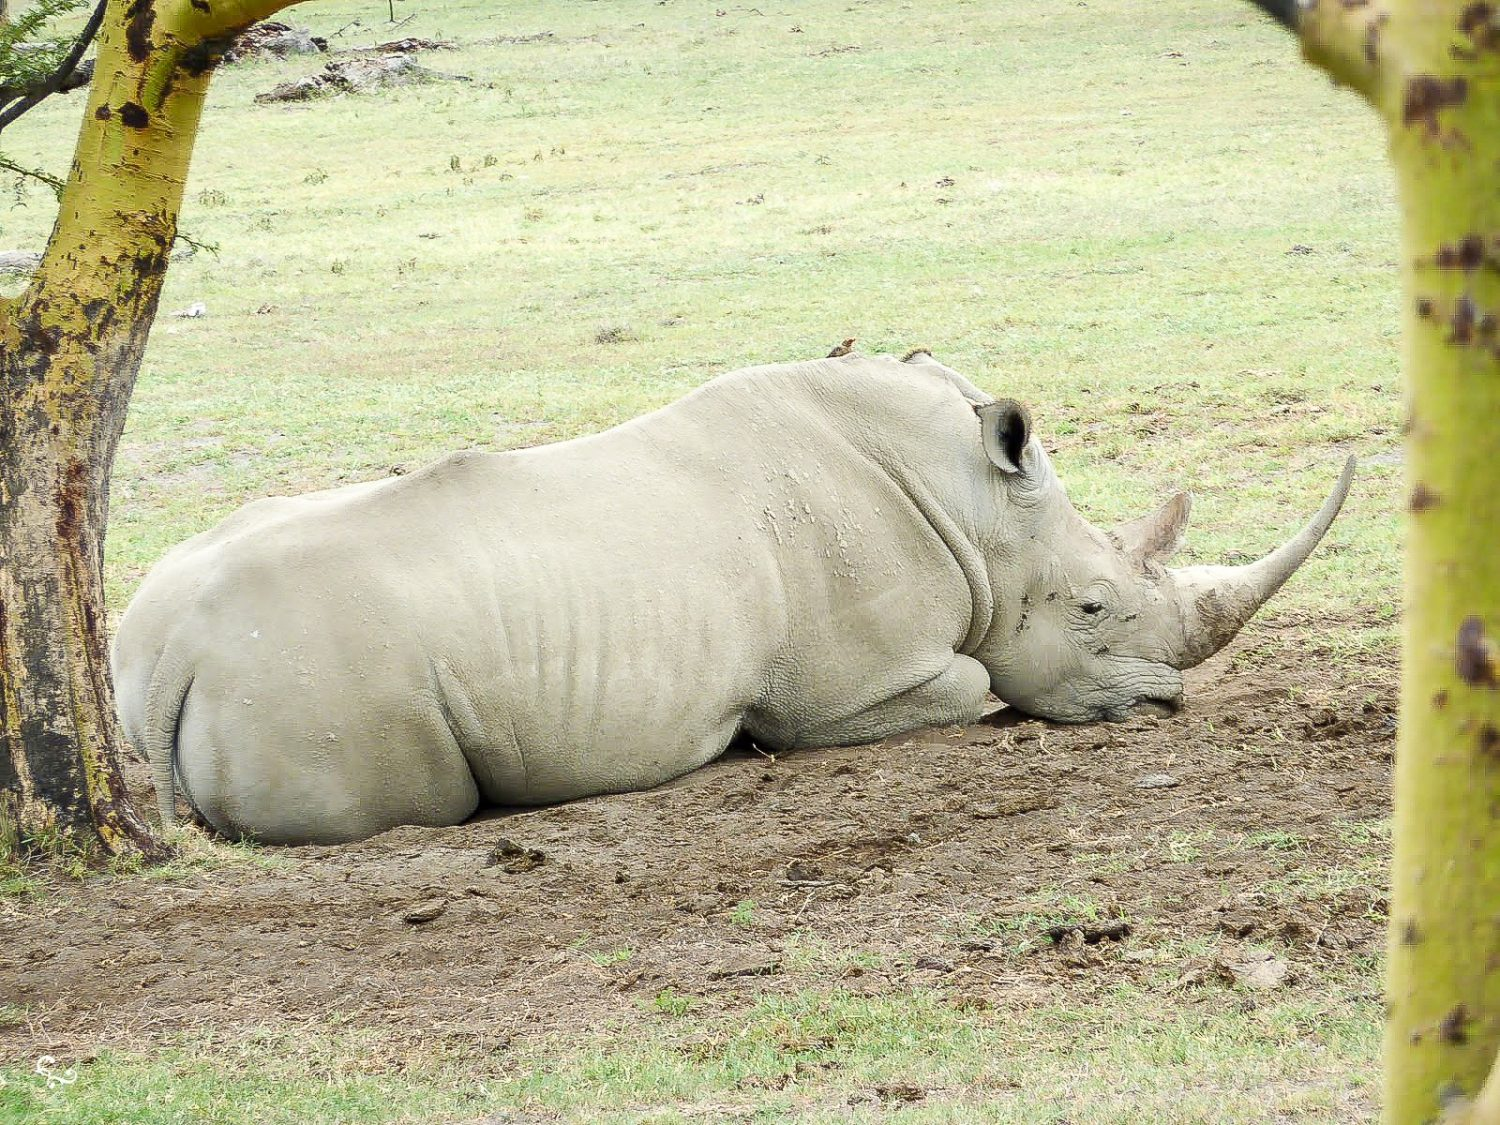 White Rhino Kenya Nakuru National Park Extinct Nowhere and Everywhere Lis Dingjan